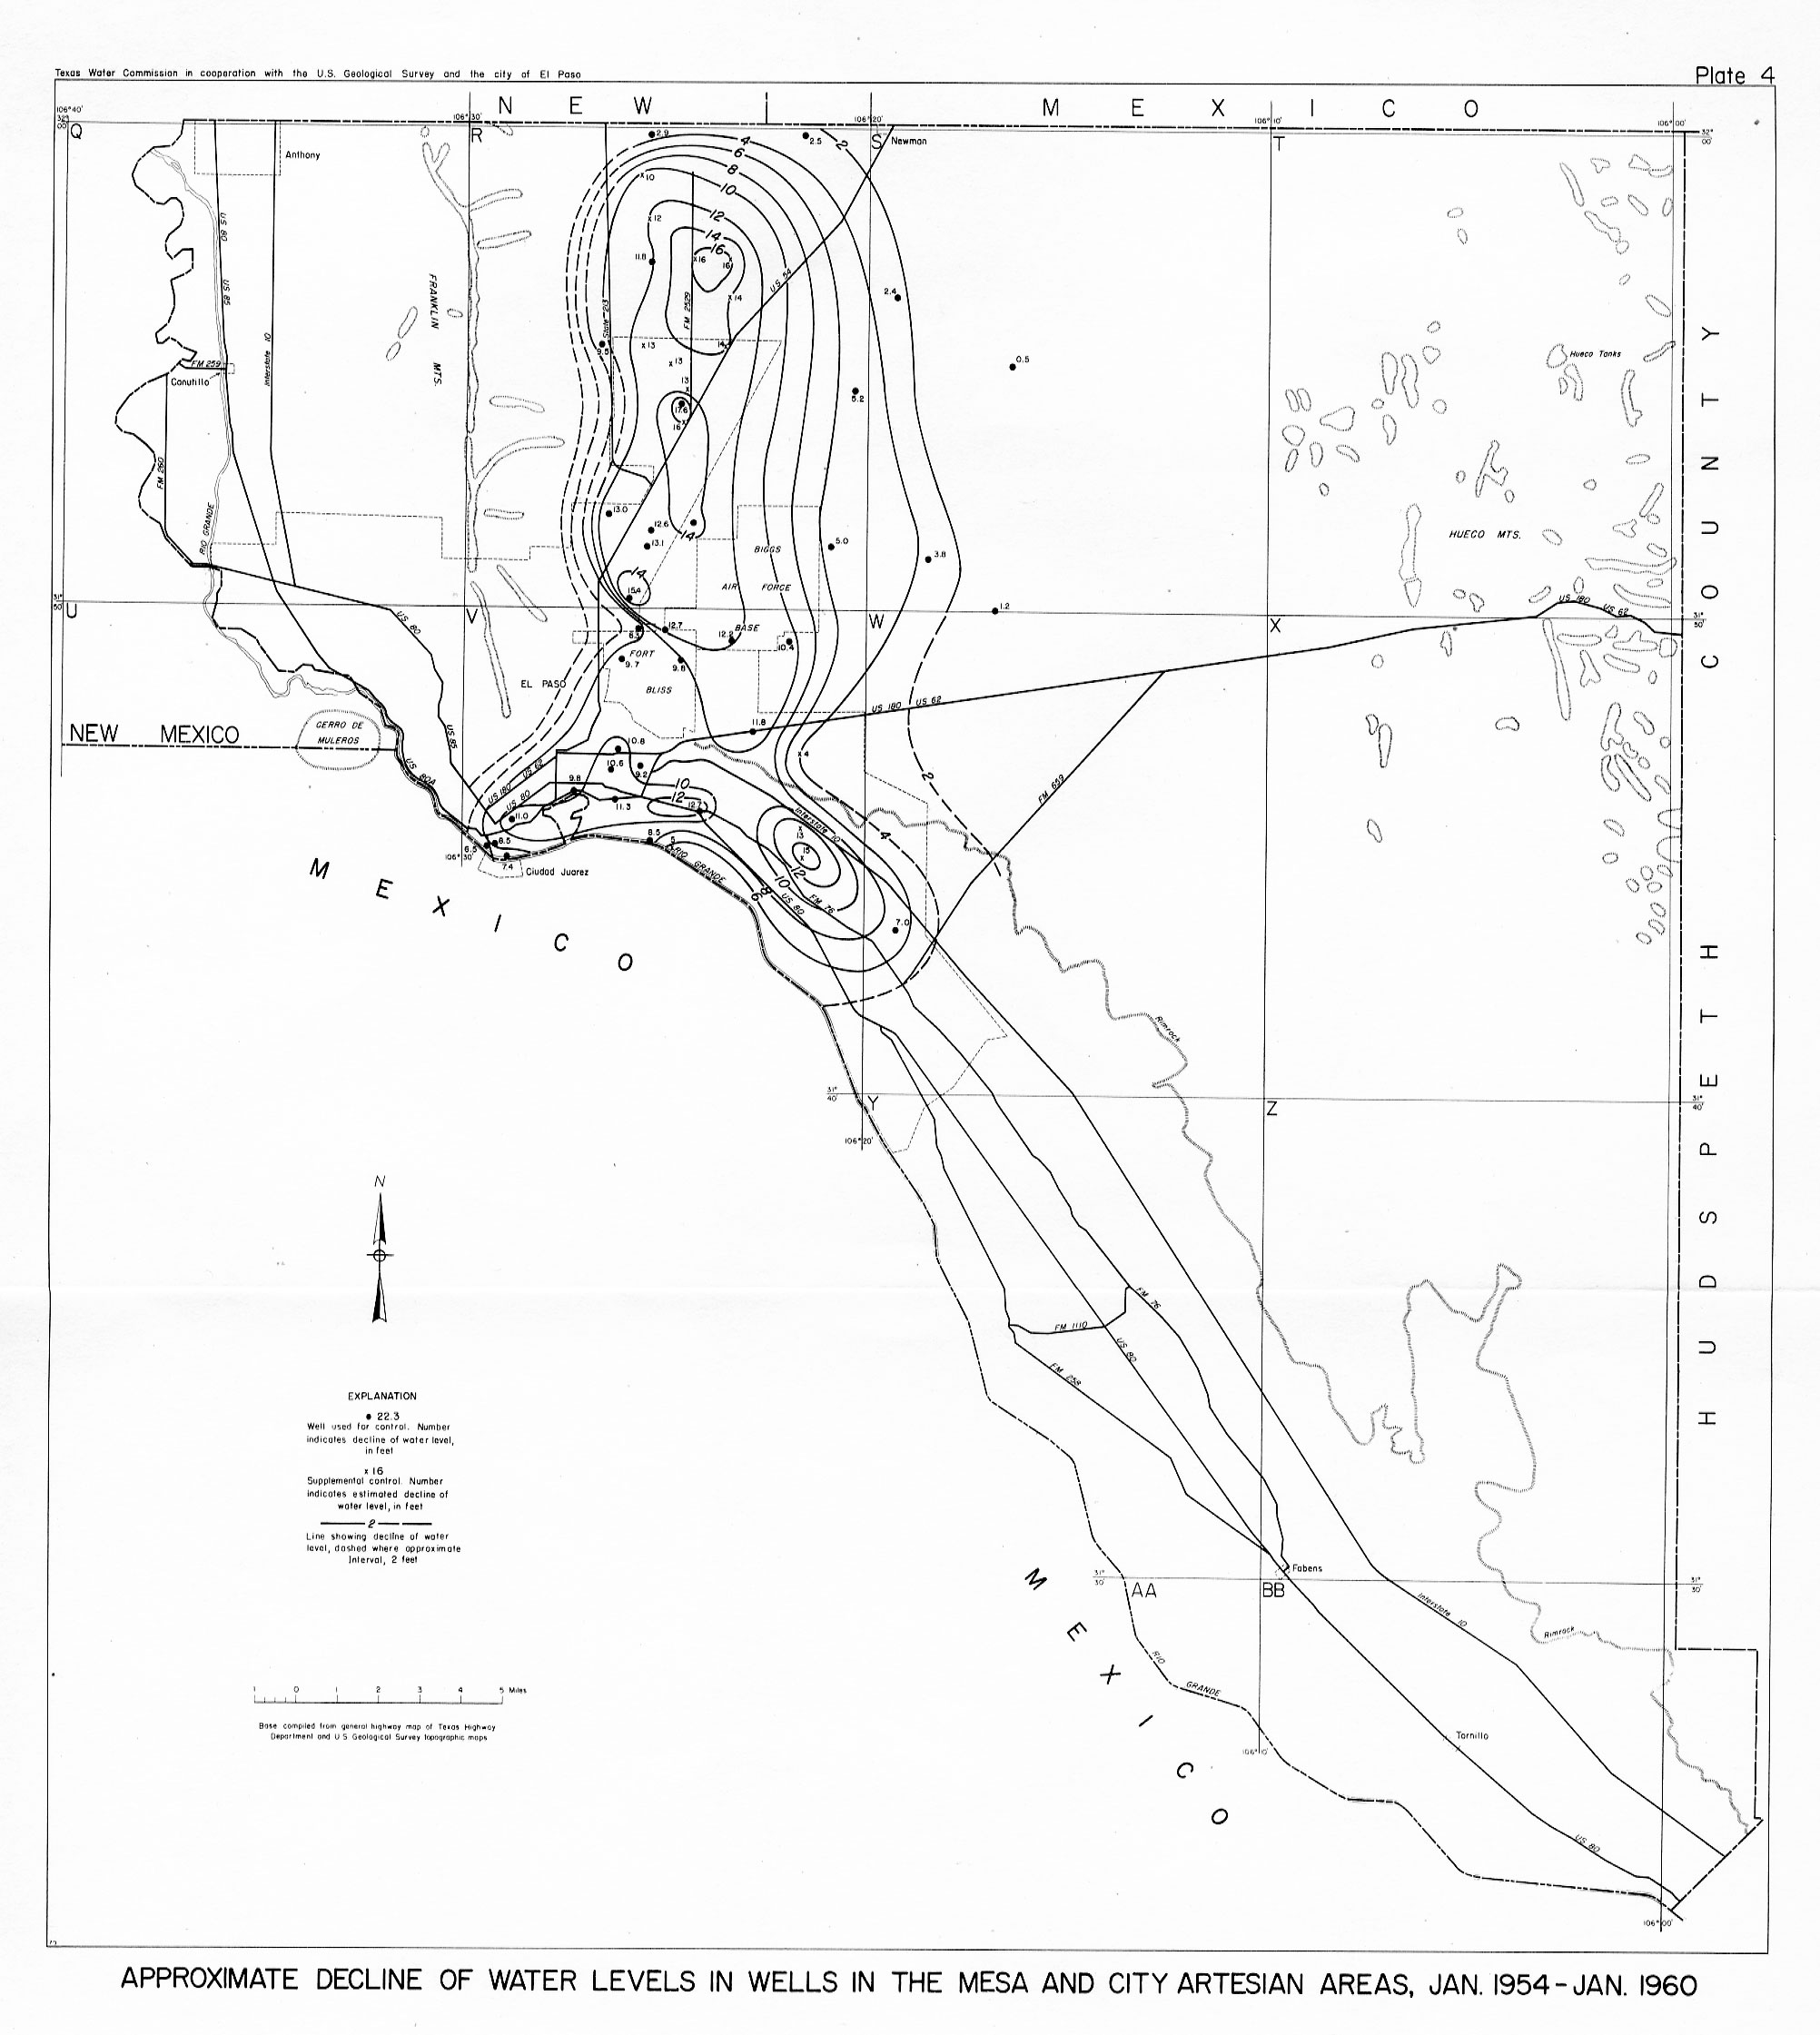 bulletin 6204 texas water development board Water Well Parts Diagram decline of water levels in wells in the mesa and city artesian areas jan 1951 jan 1960